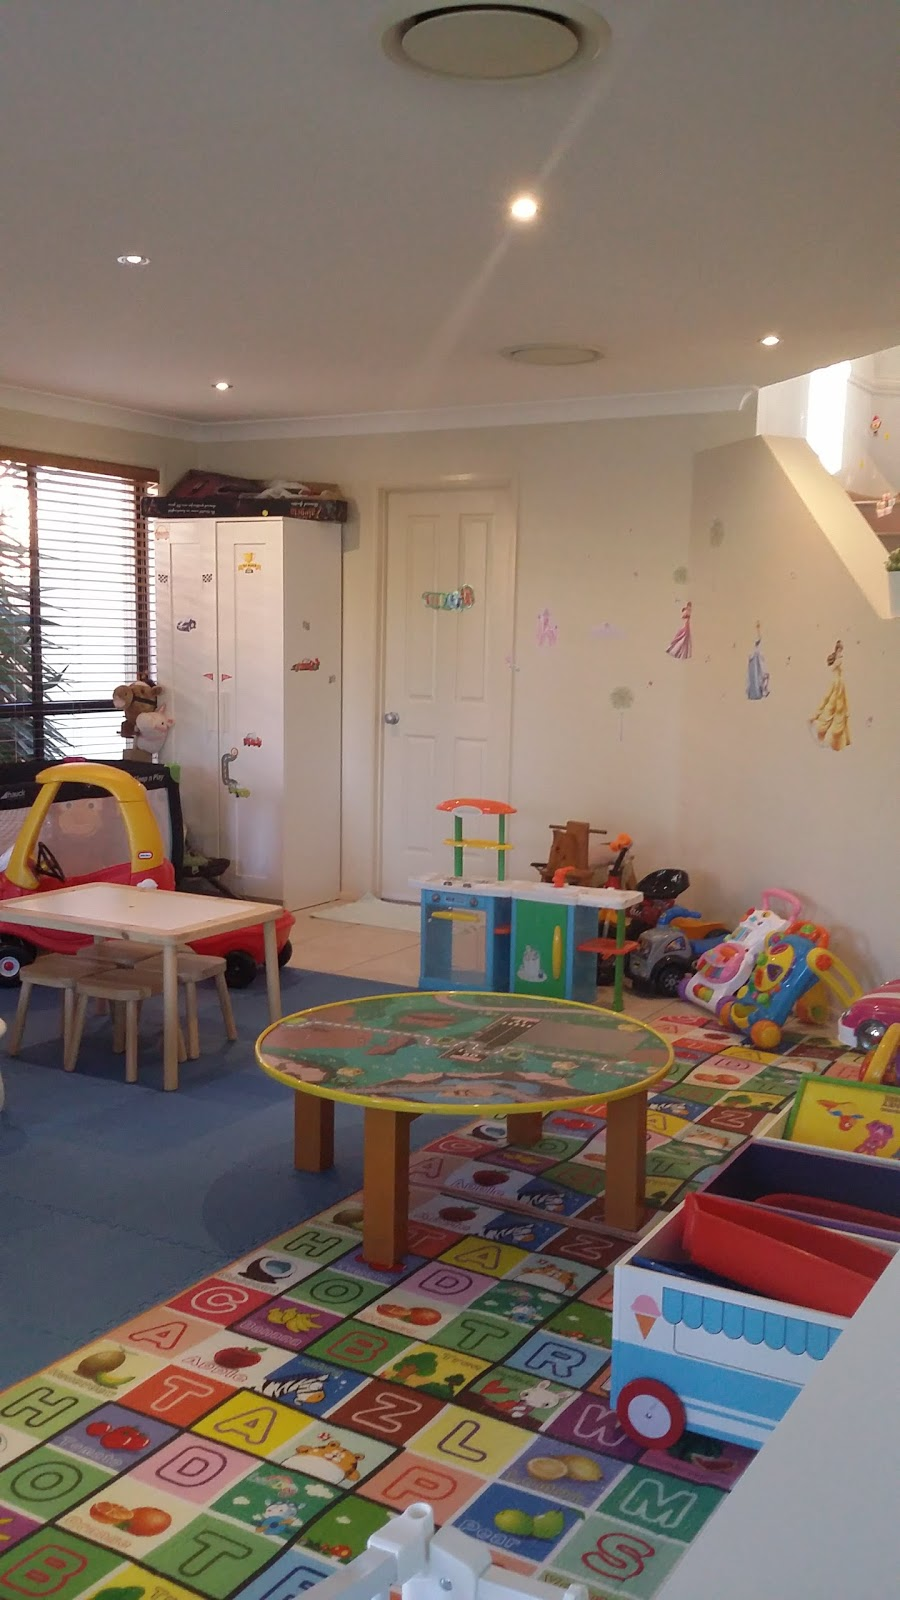 Loving Family Day Care | school | 20 Holt St, North Ryde NSW 2113, Australia | 0430470556 OR +61 430 470 556